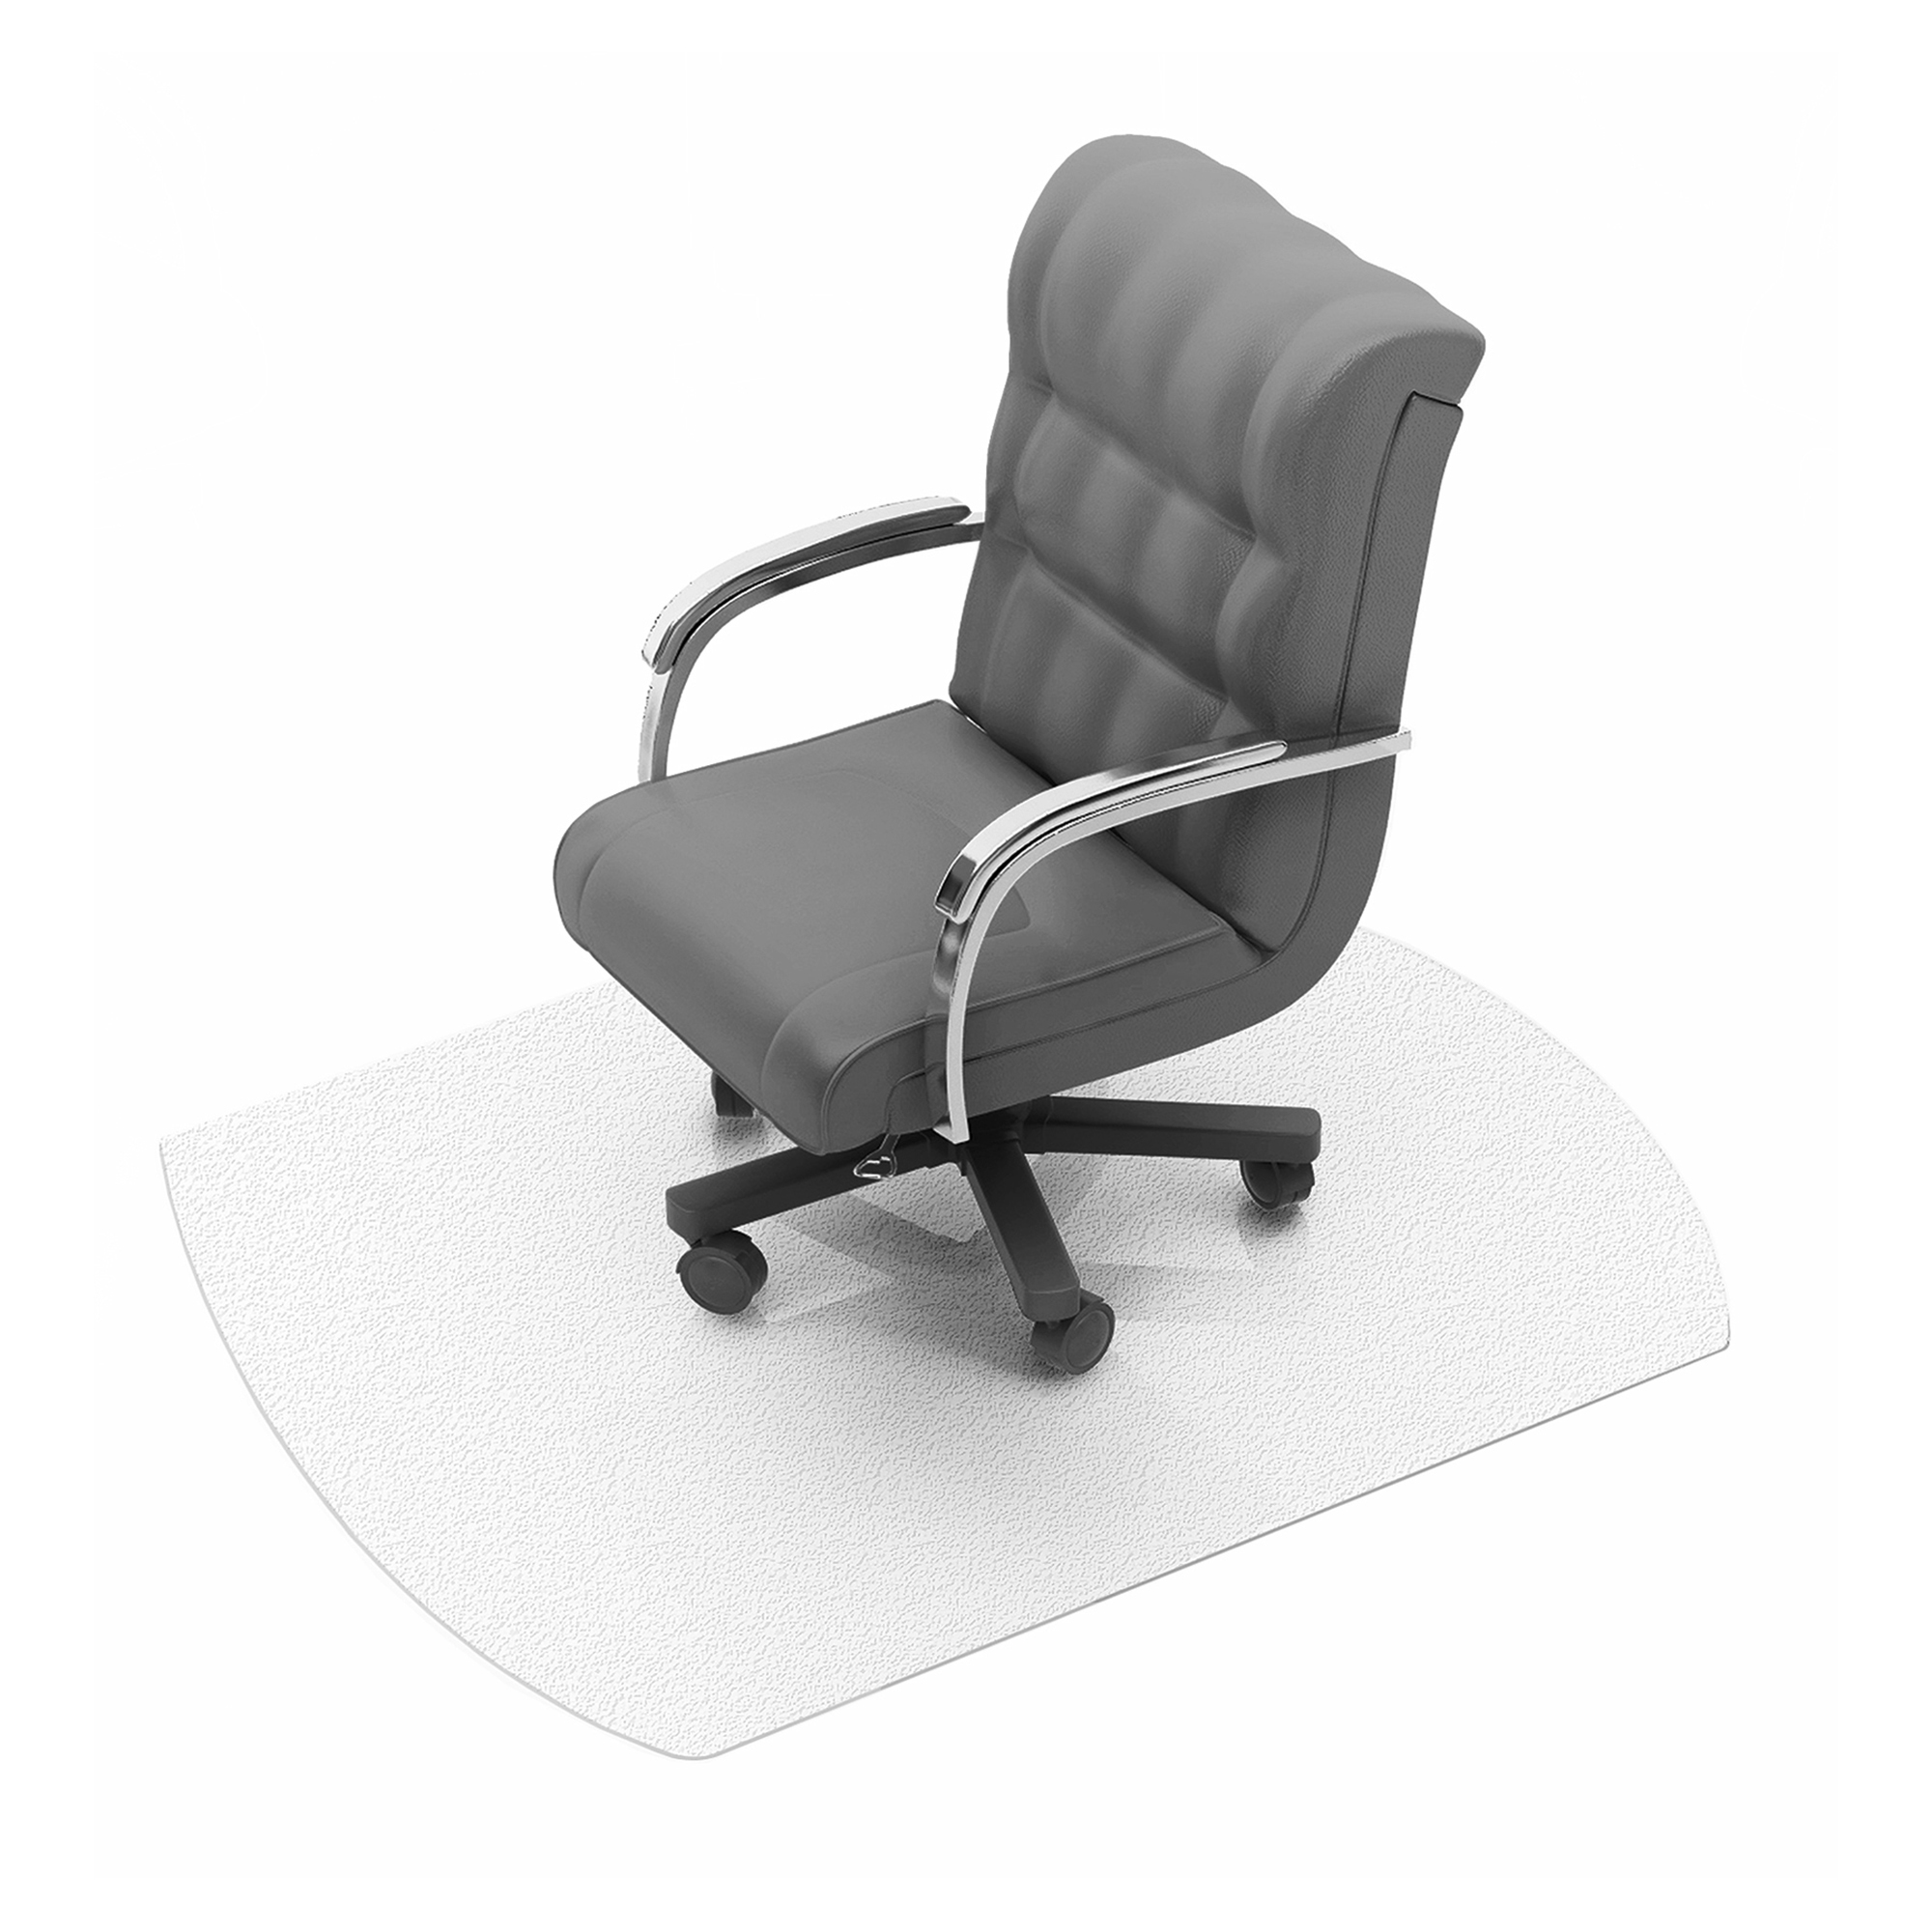 Chair mat Cleartex Ultimat Chair Mat Polycarbonate Contoured For Carpet Protection 990x1250mm Clear Ref FC119923SR